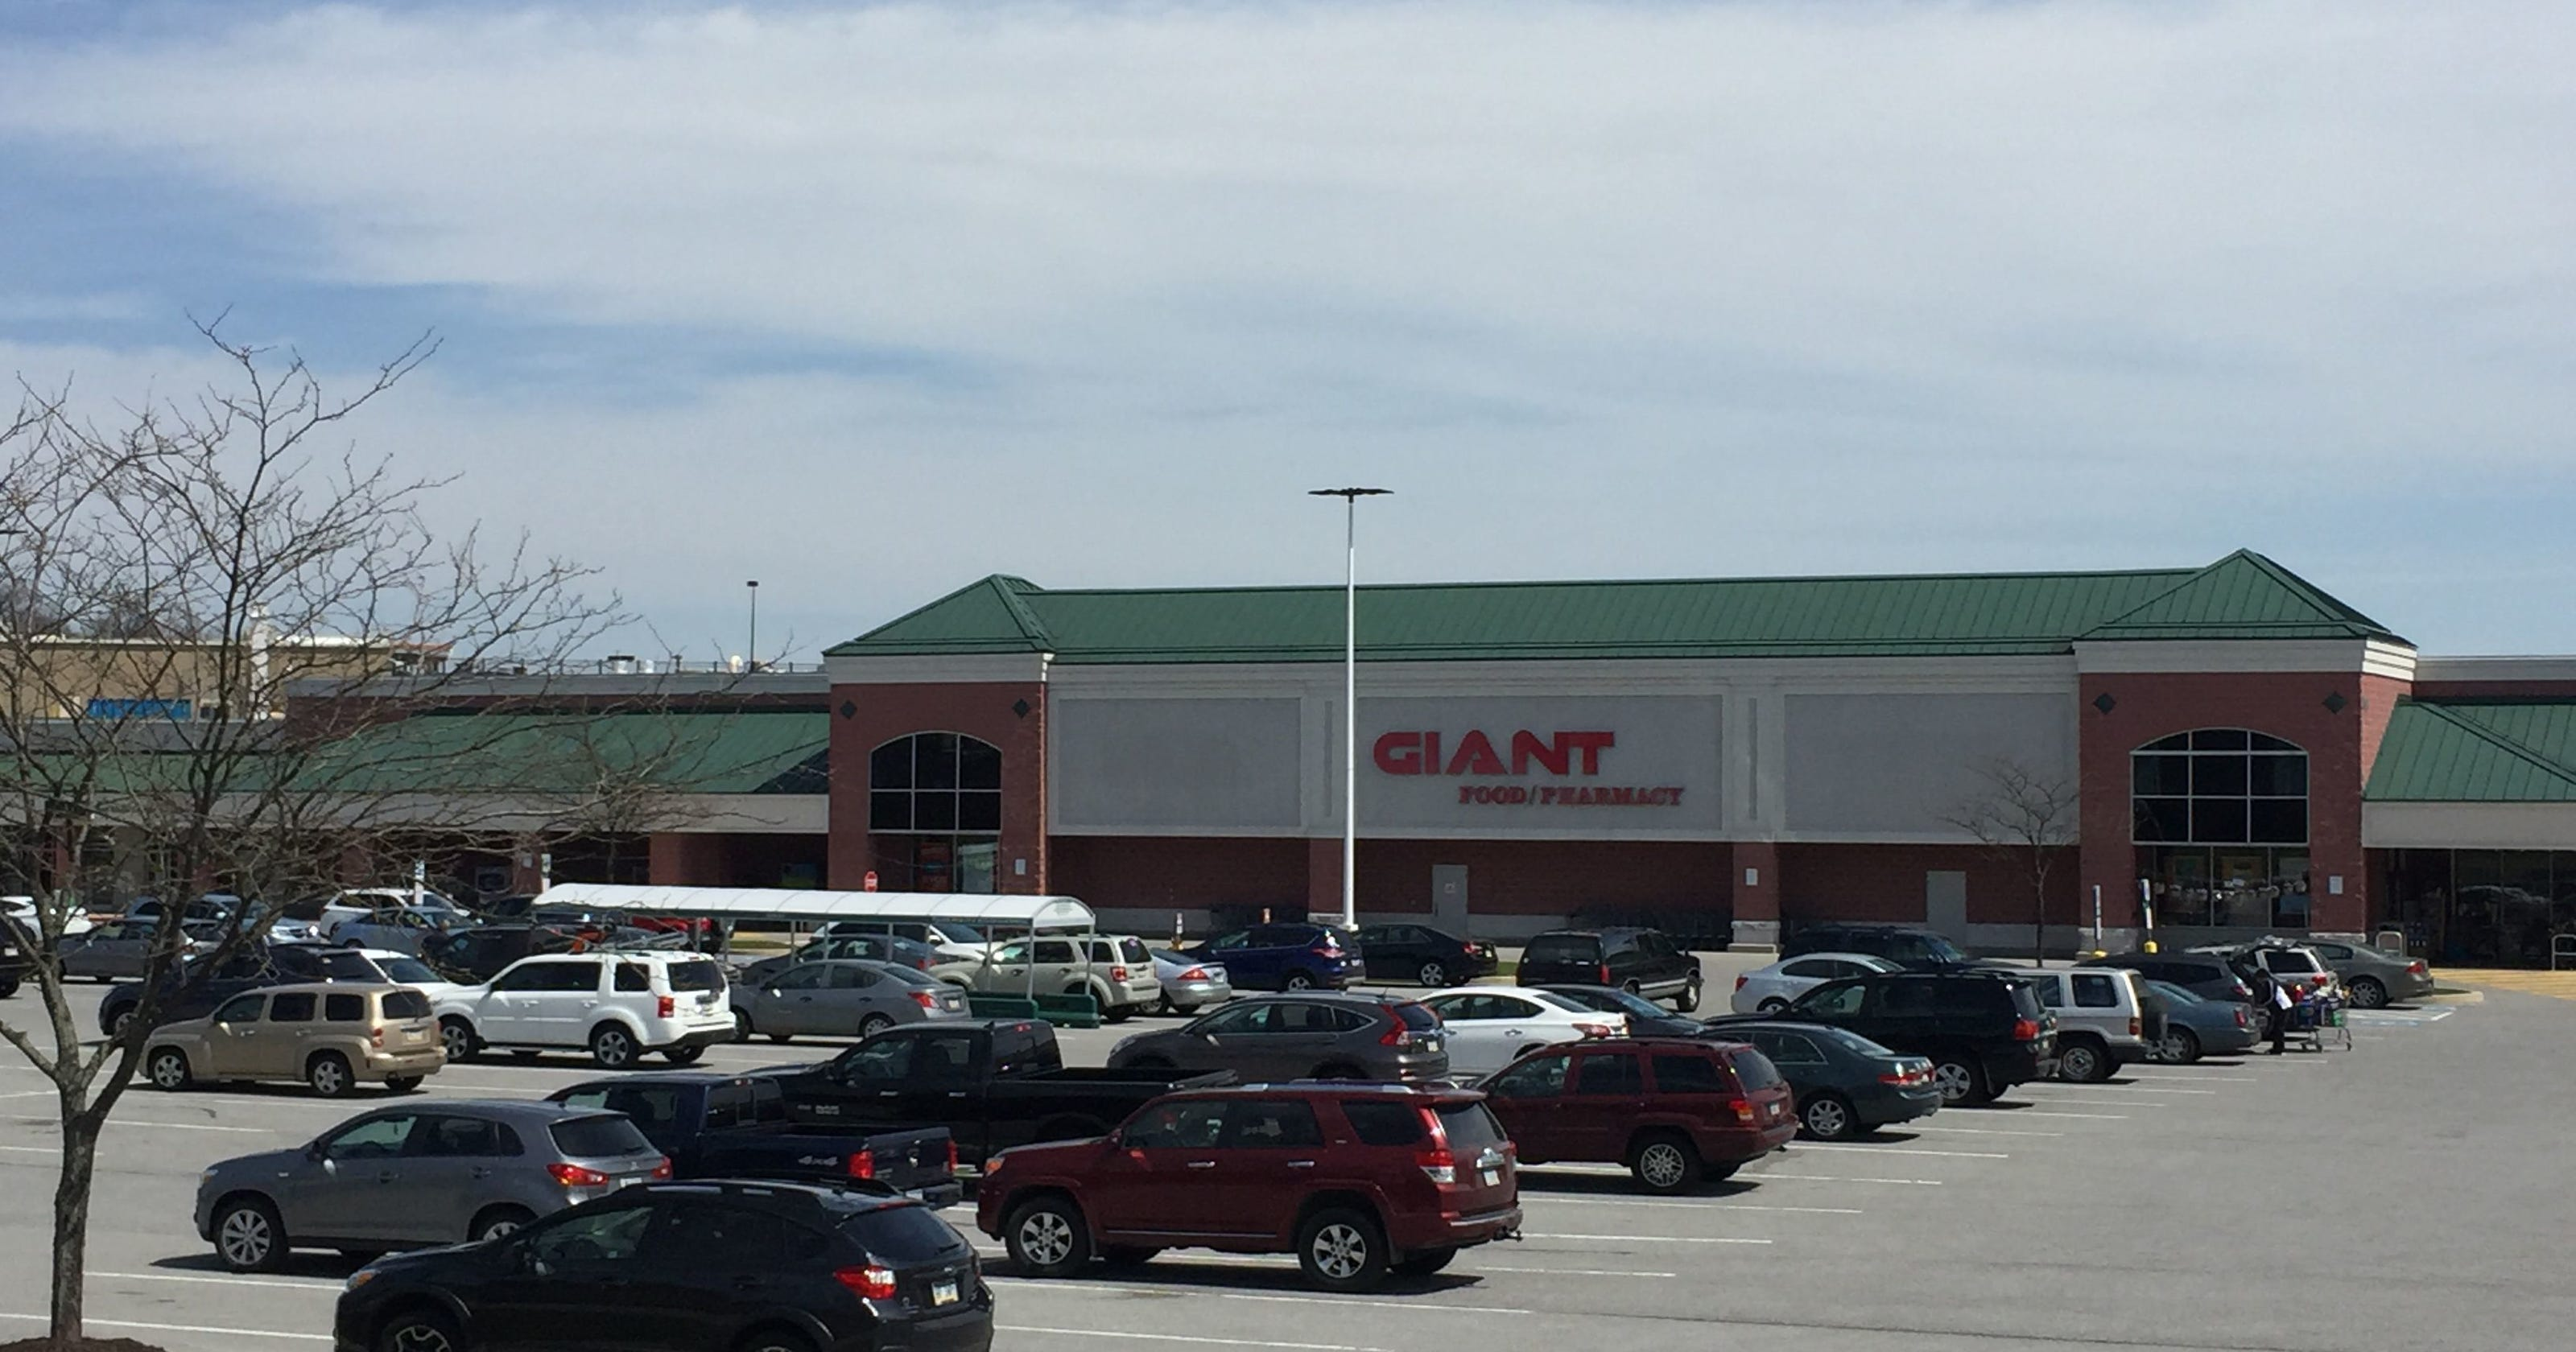 Giant Food Stores In Shrewsbury To Be Remodeled Company Says